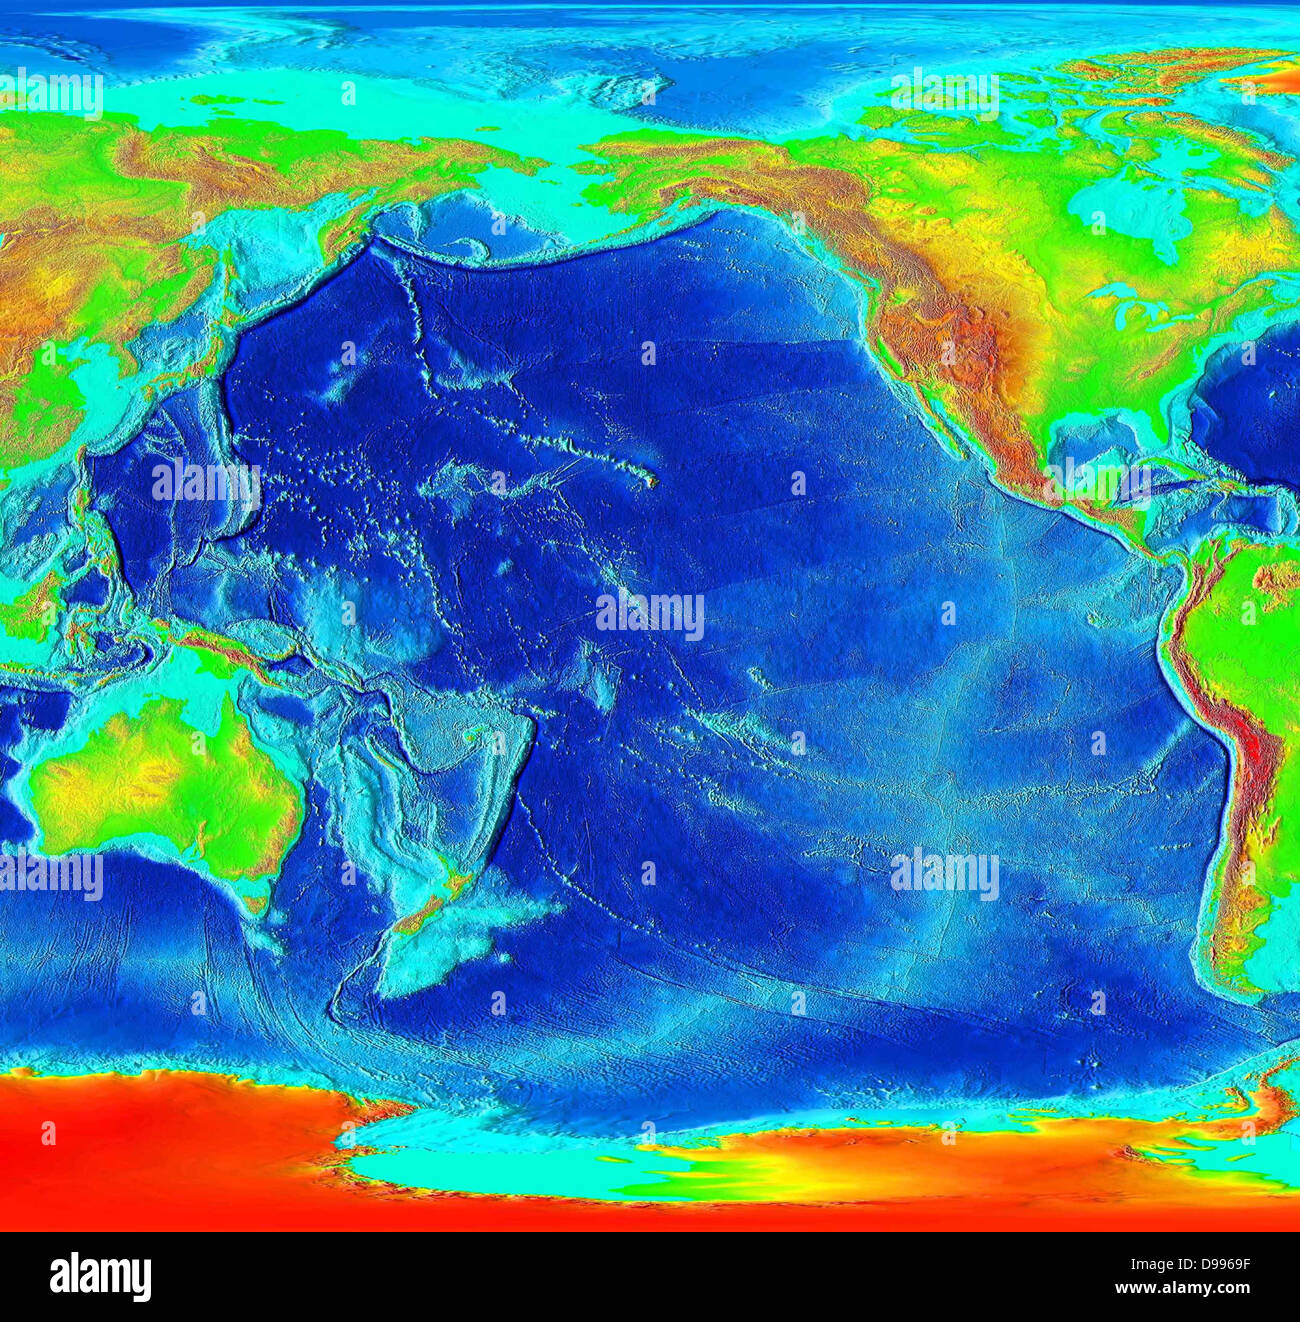 The Pacific is ringed by many volcanoes and oceanic trenches - Stock Image